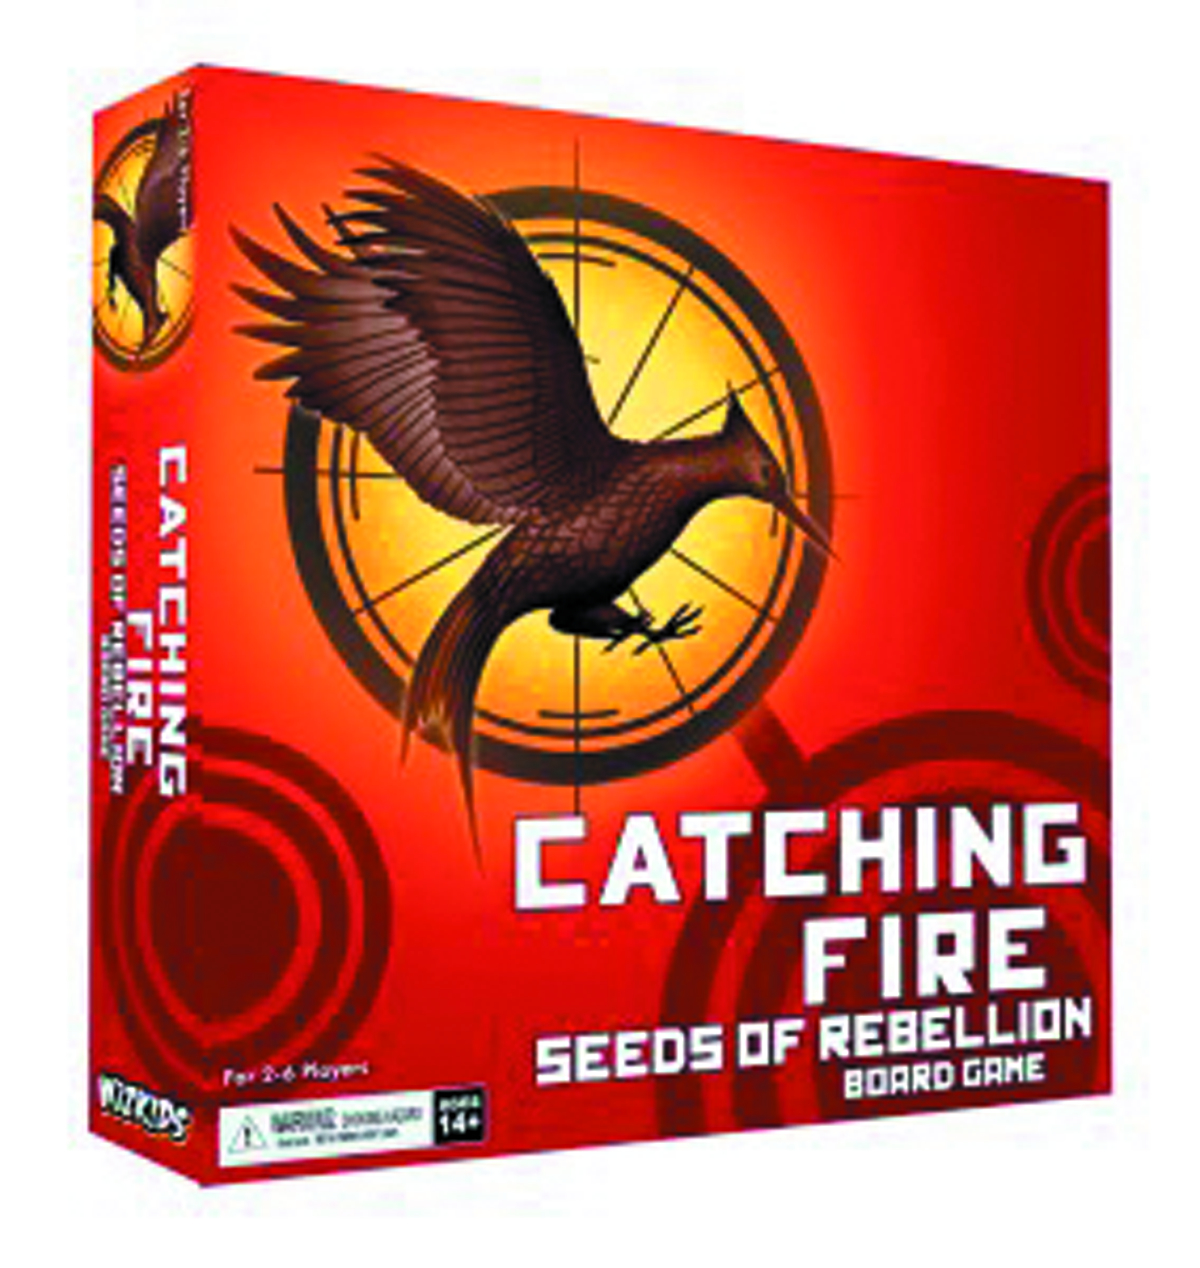 CATCHING FIRE SEEDS OF REBELLION BOARD GAME